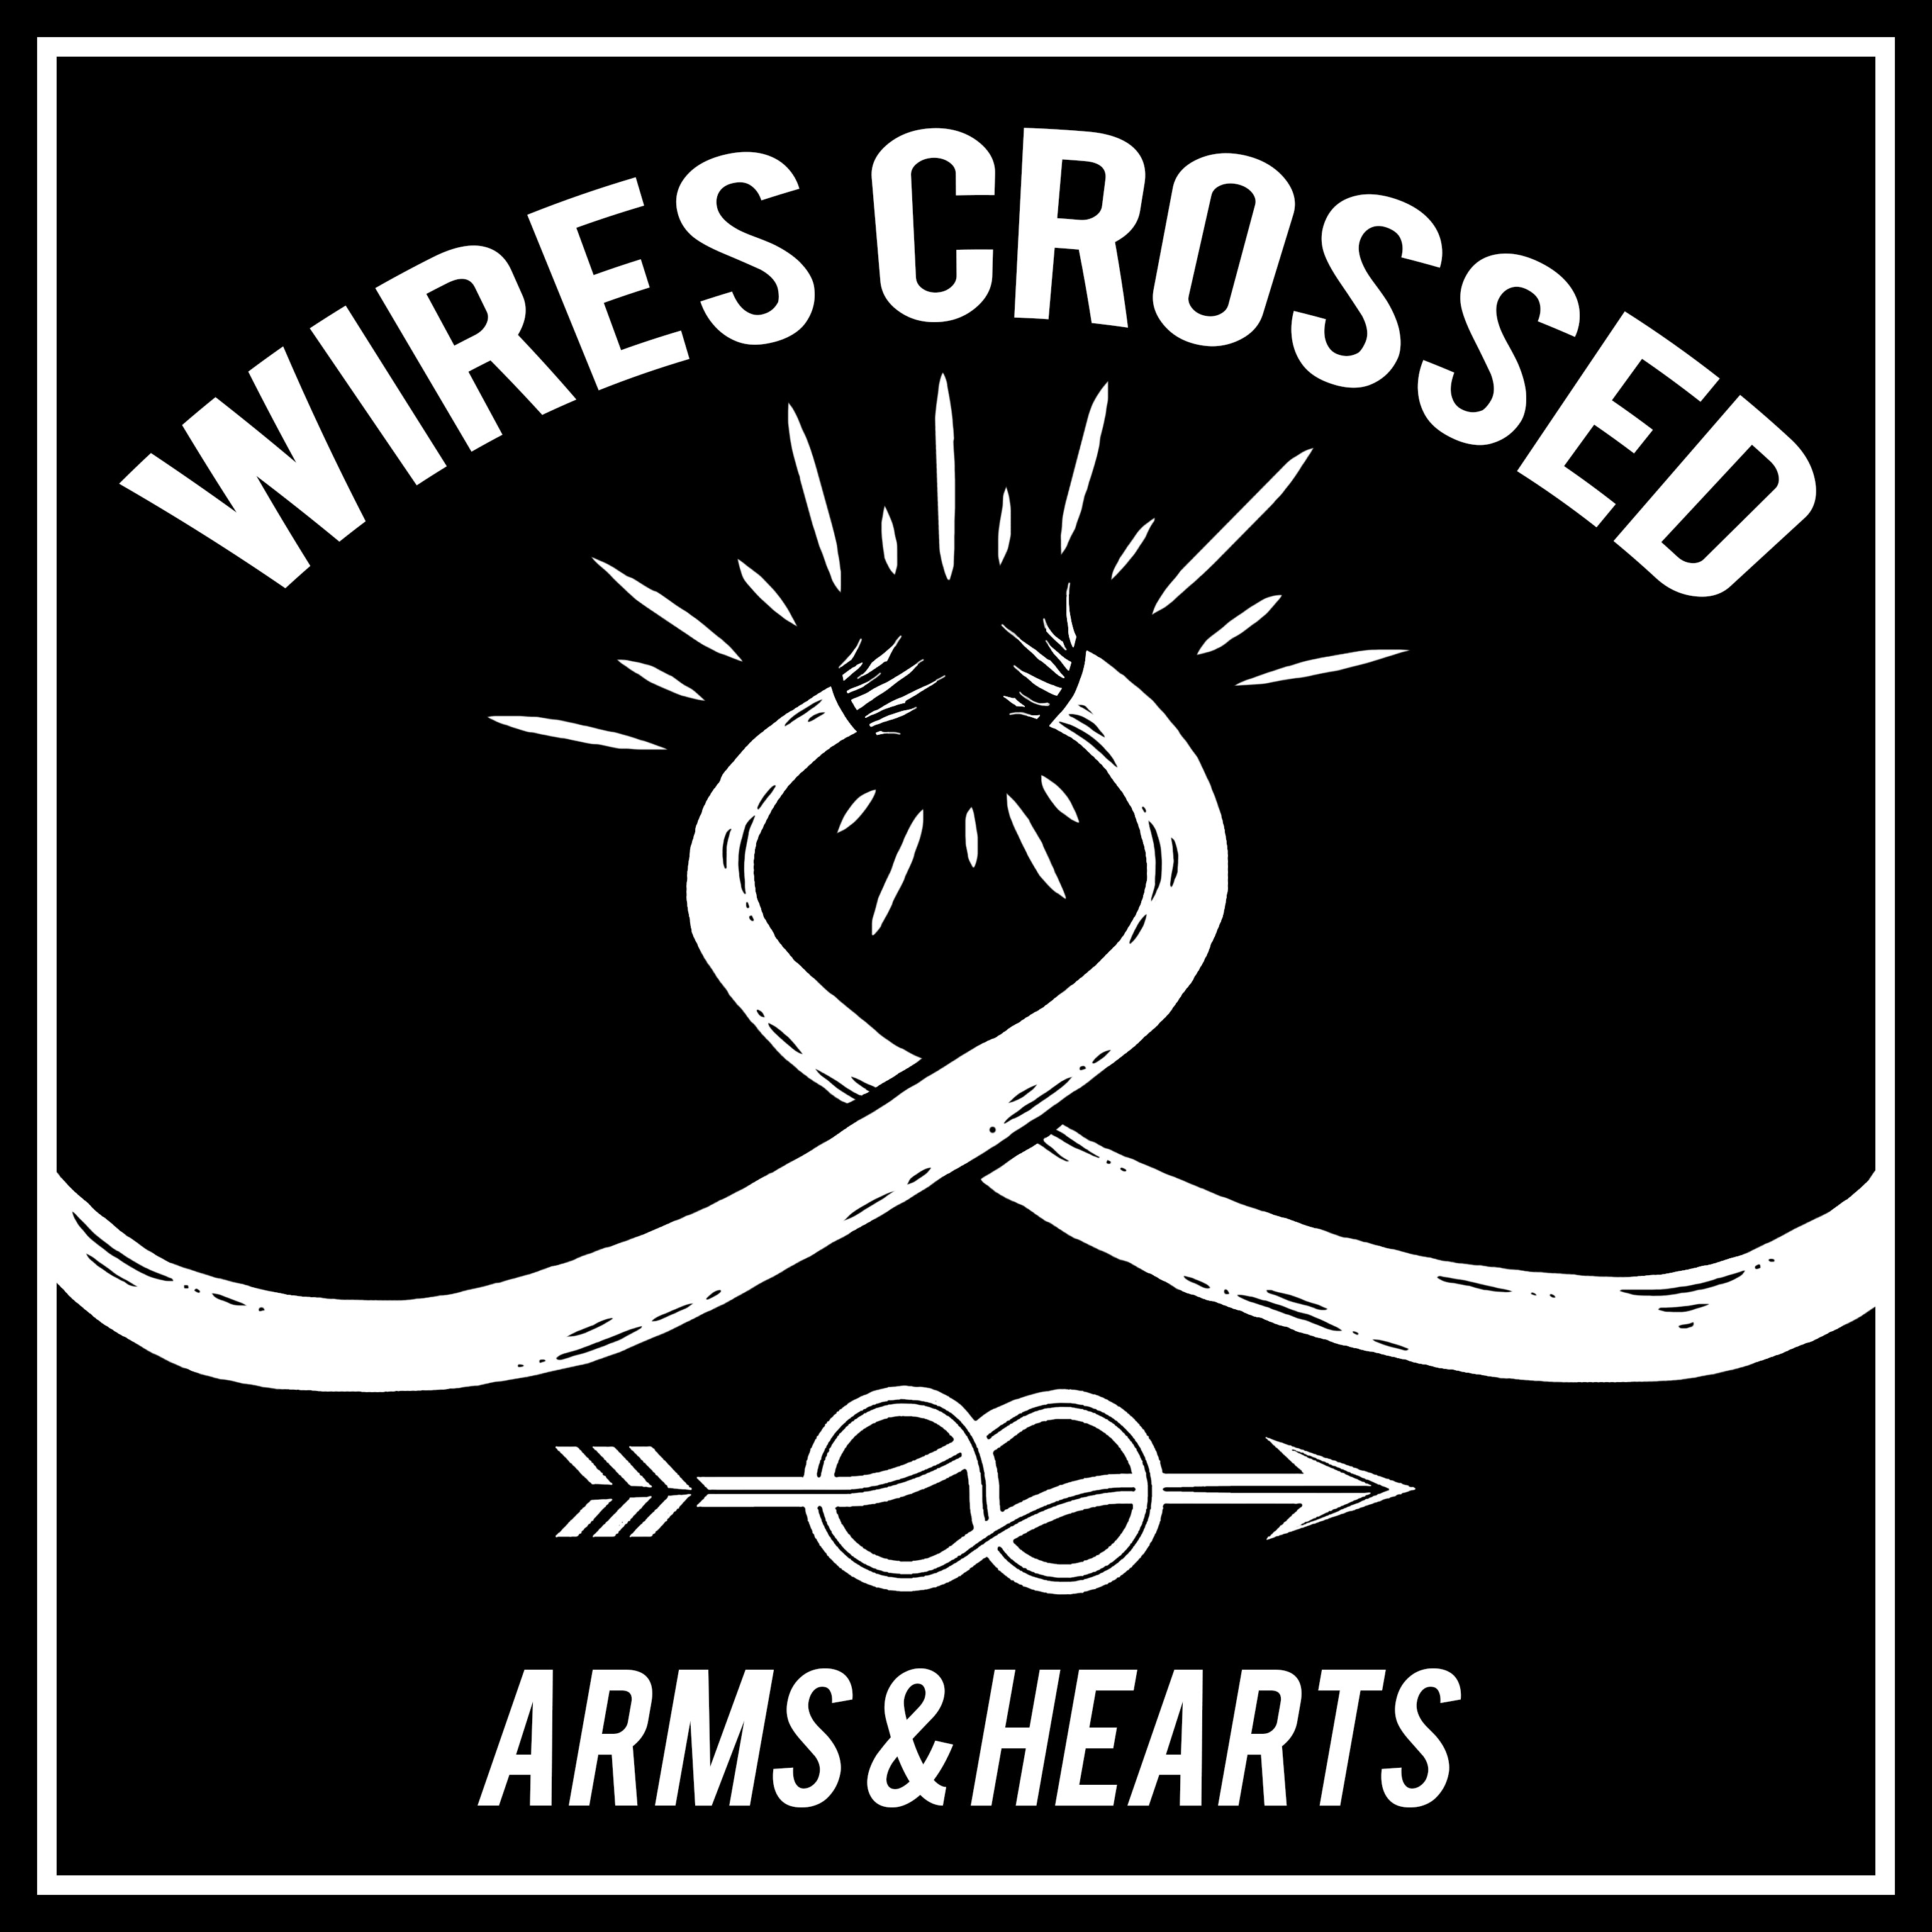 Arms & Hearts - Wires Crossed